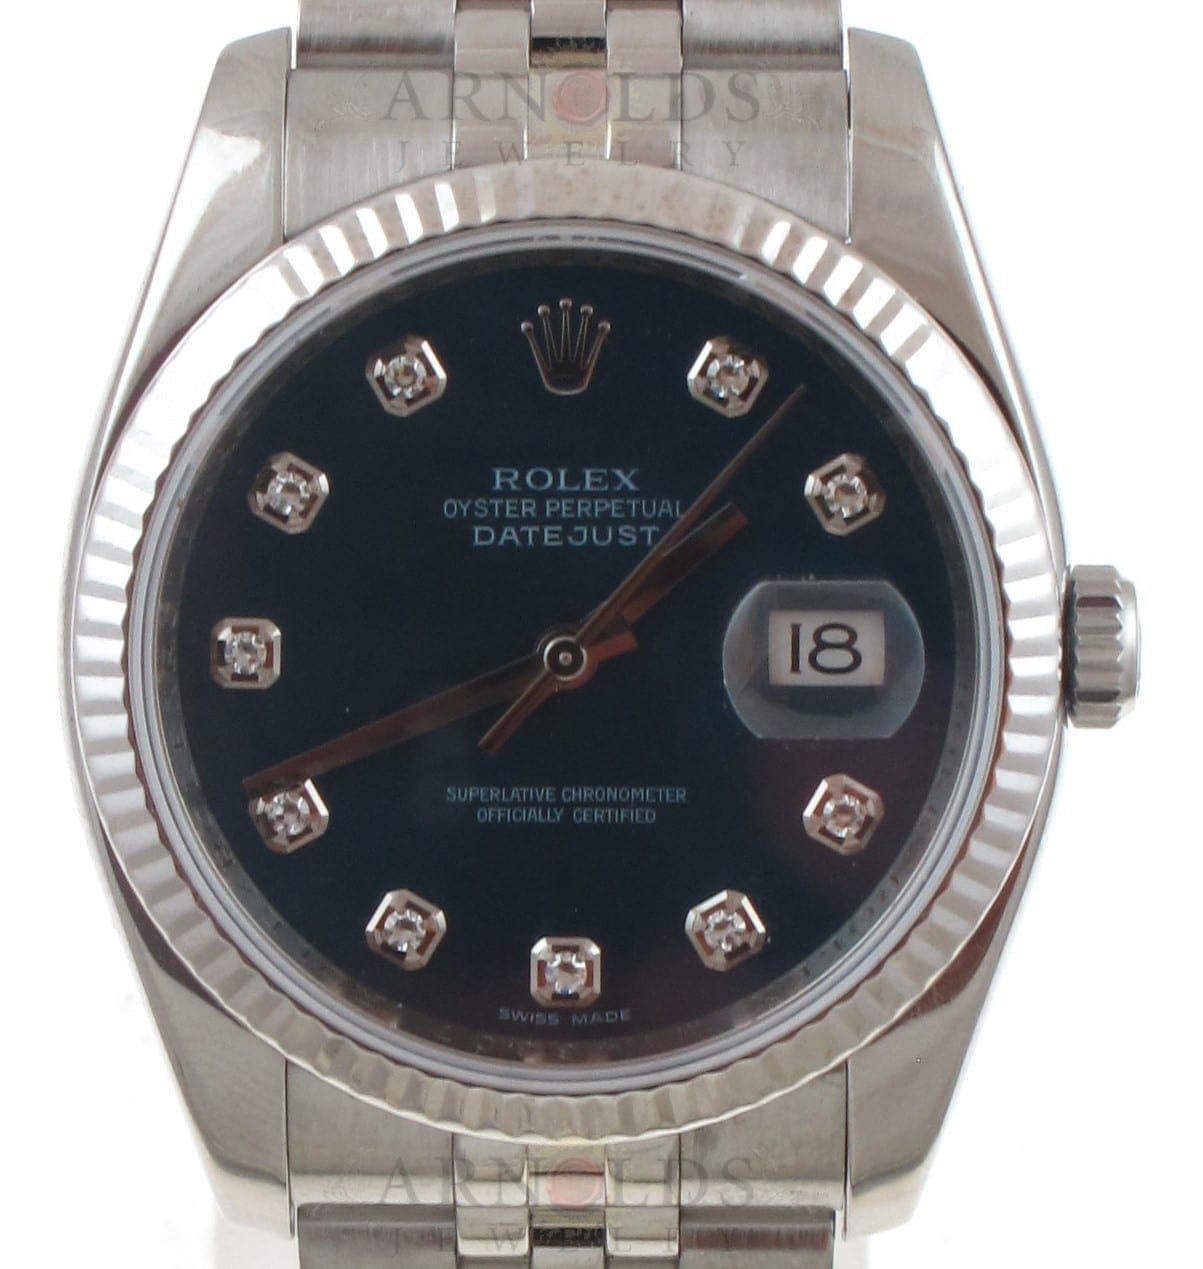 049b4905420 Previous; Next. 1; 2; 3. Previous; Next. Pre-Owned 2007 Stainless Steel  Rolex Datejust Watch Factory Blue Diamond Dial With White Gold ...